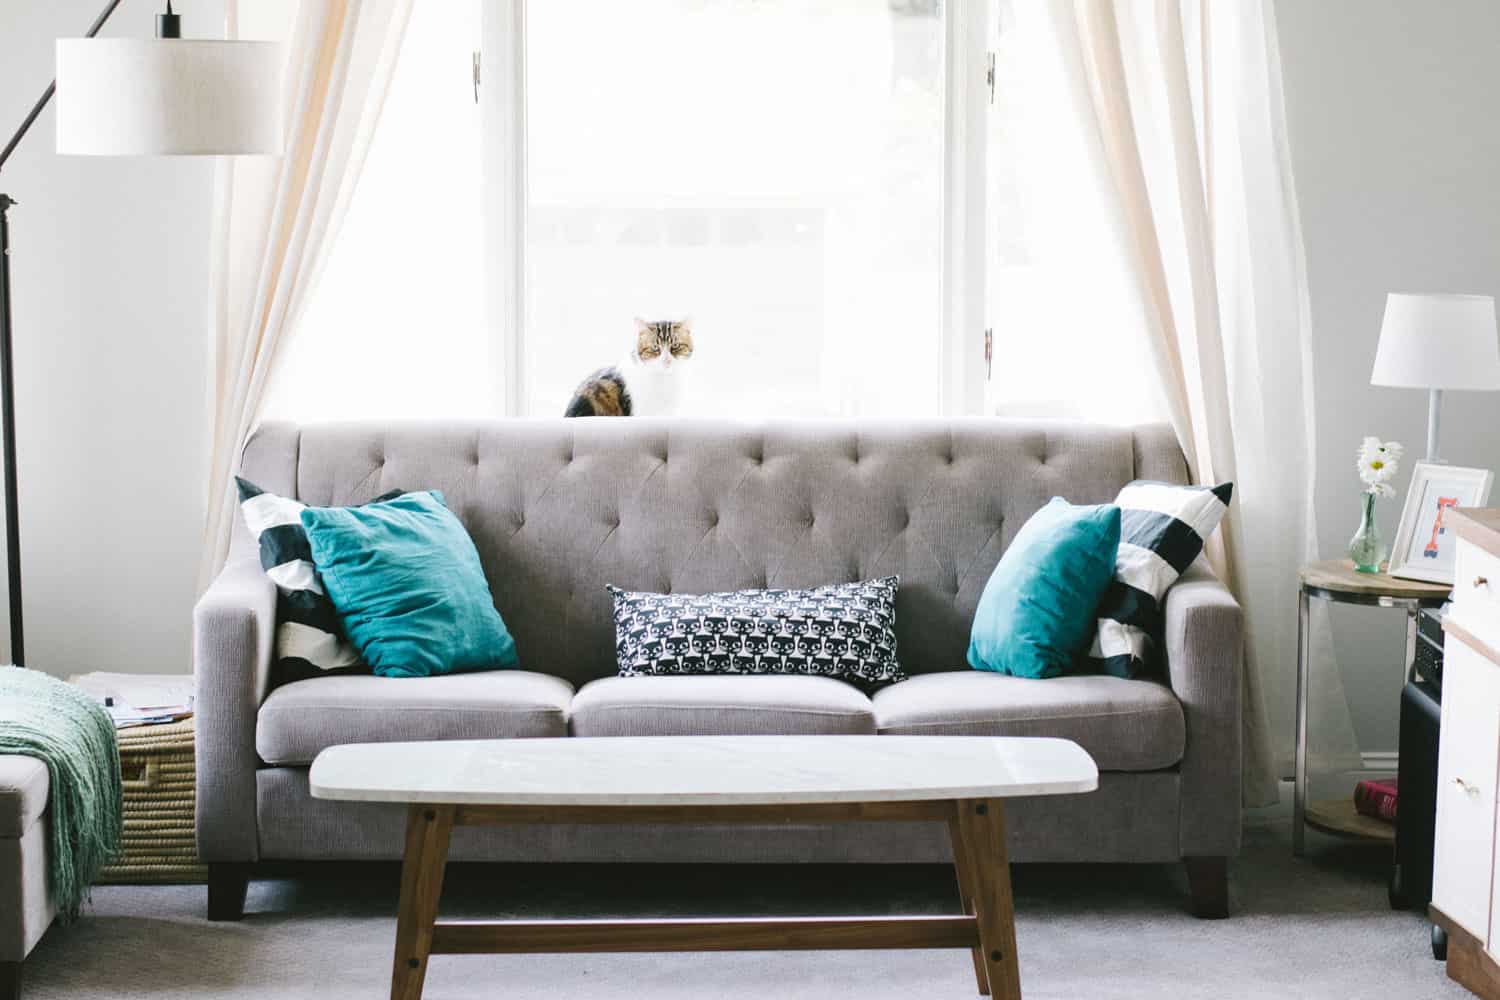 photo of clean living room with presentable couch